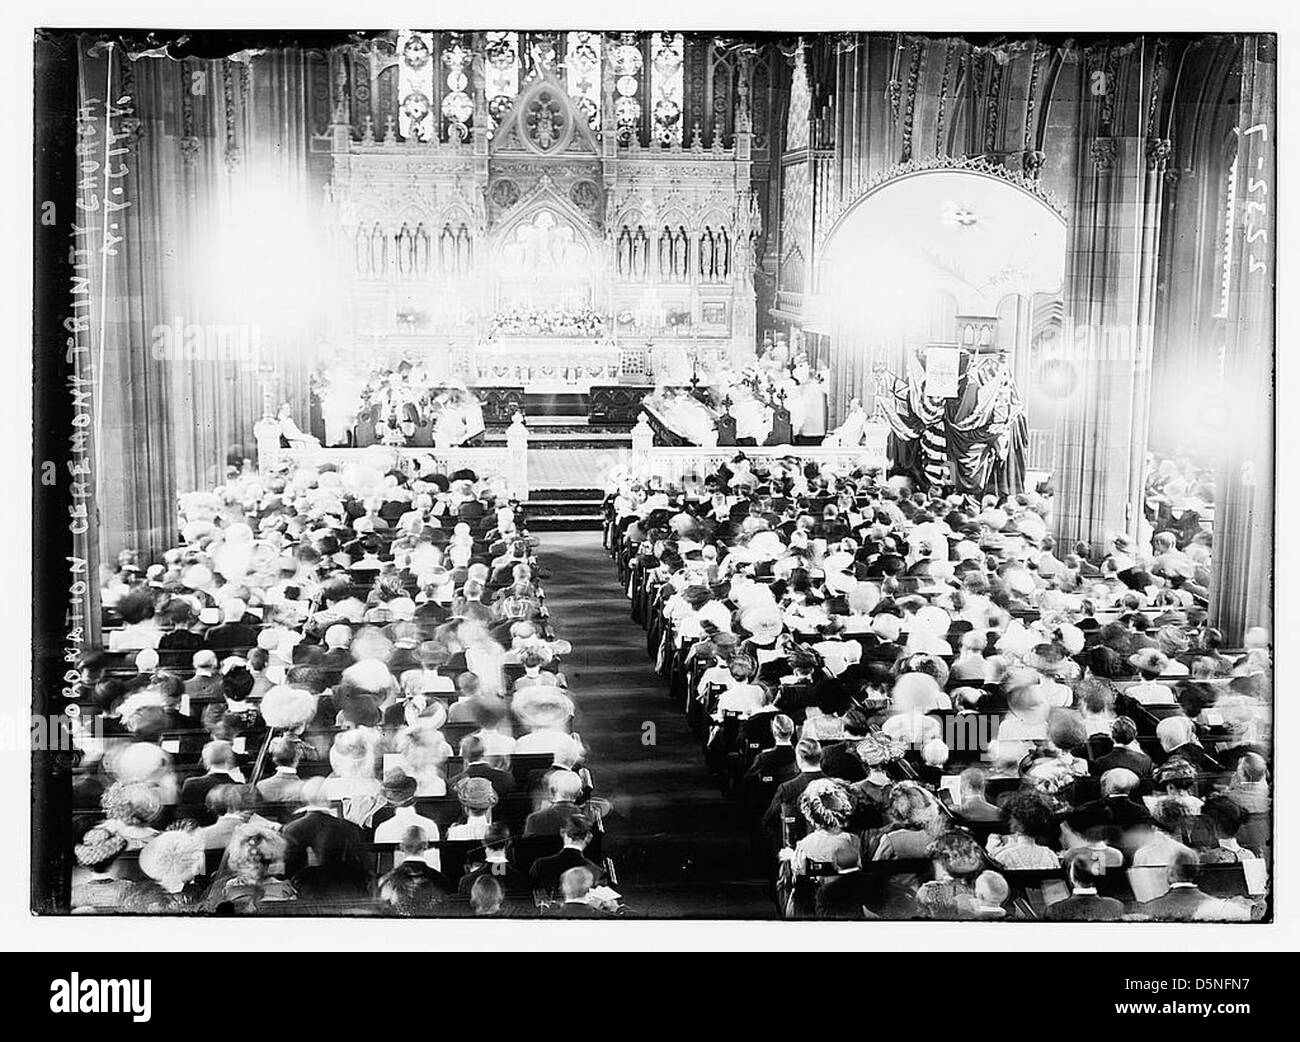 [Cathedral] Episcopal Trinity - Coronation Ceremony (LOC) - Stock Image